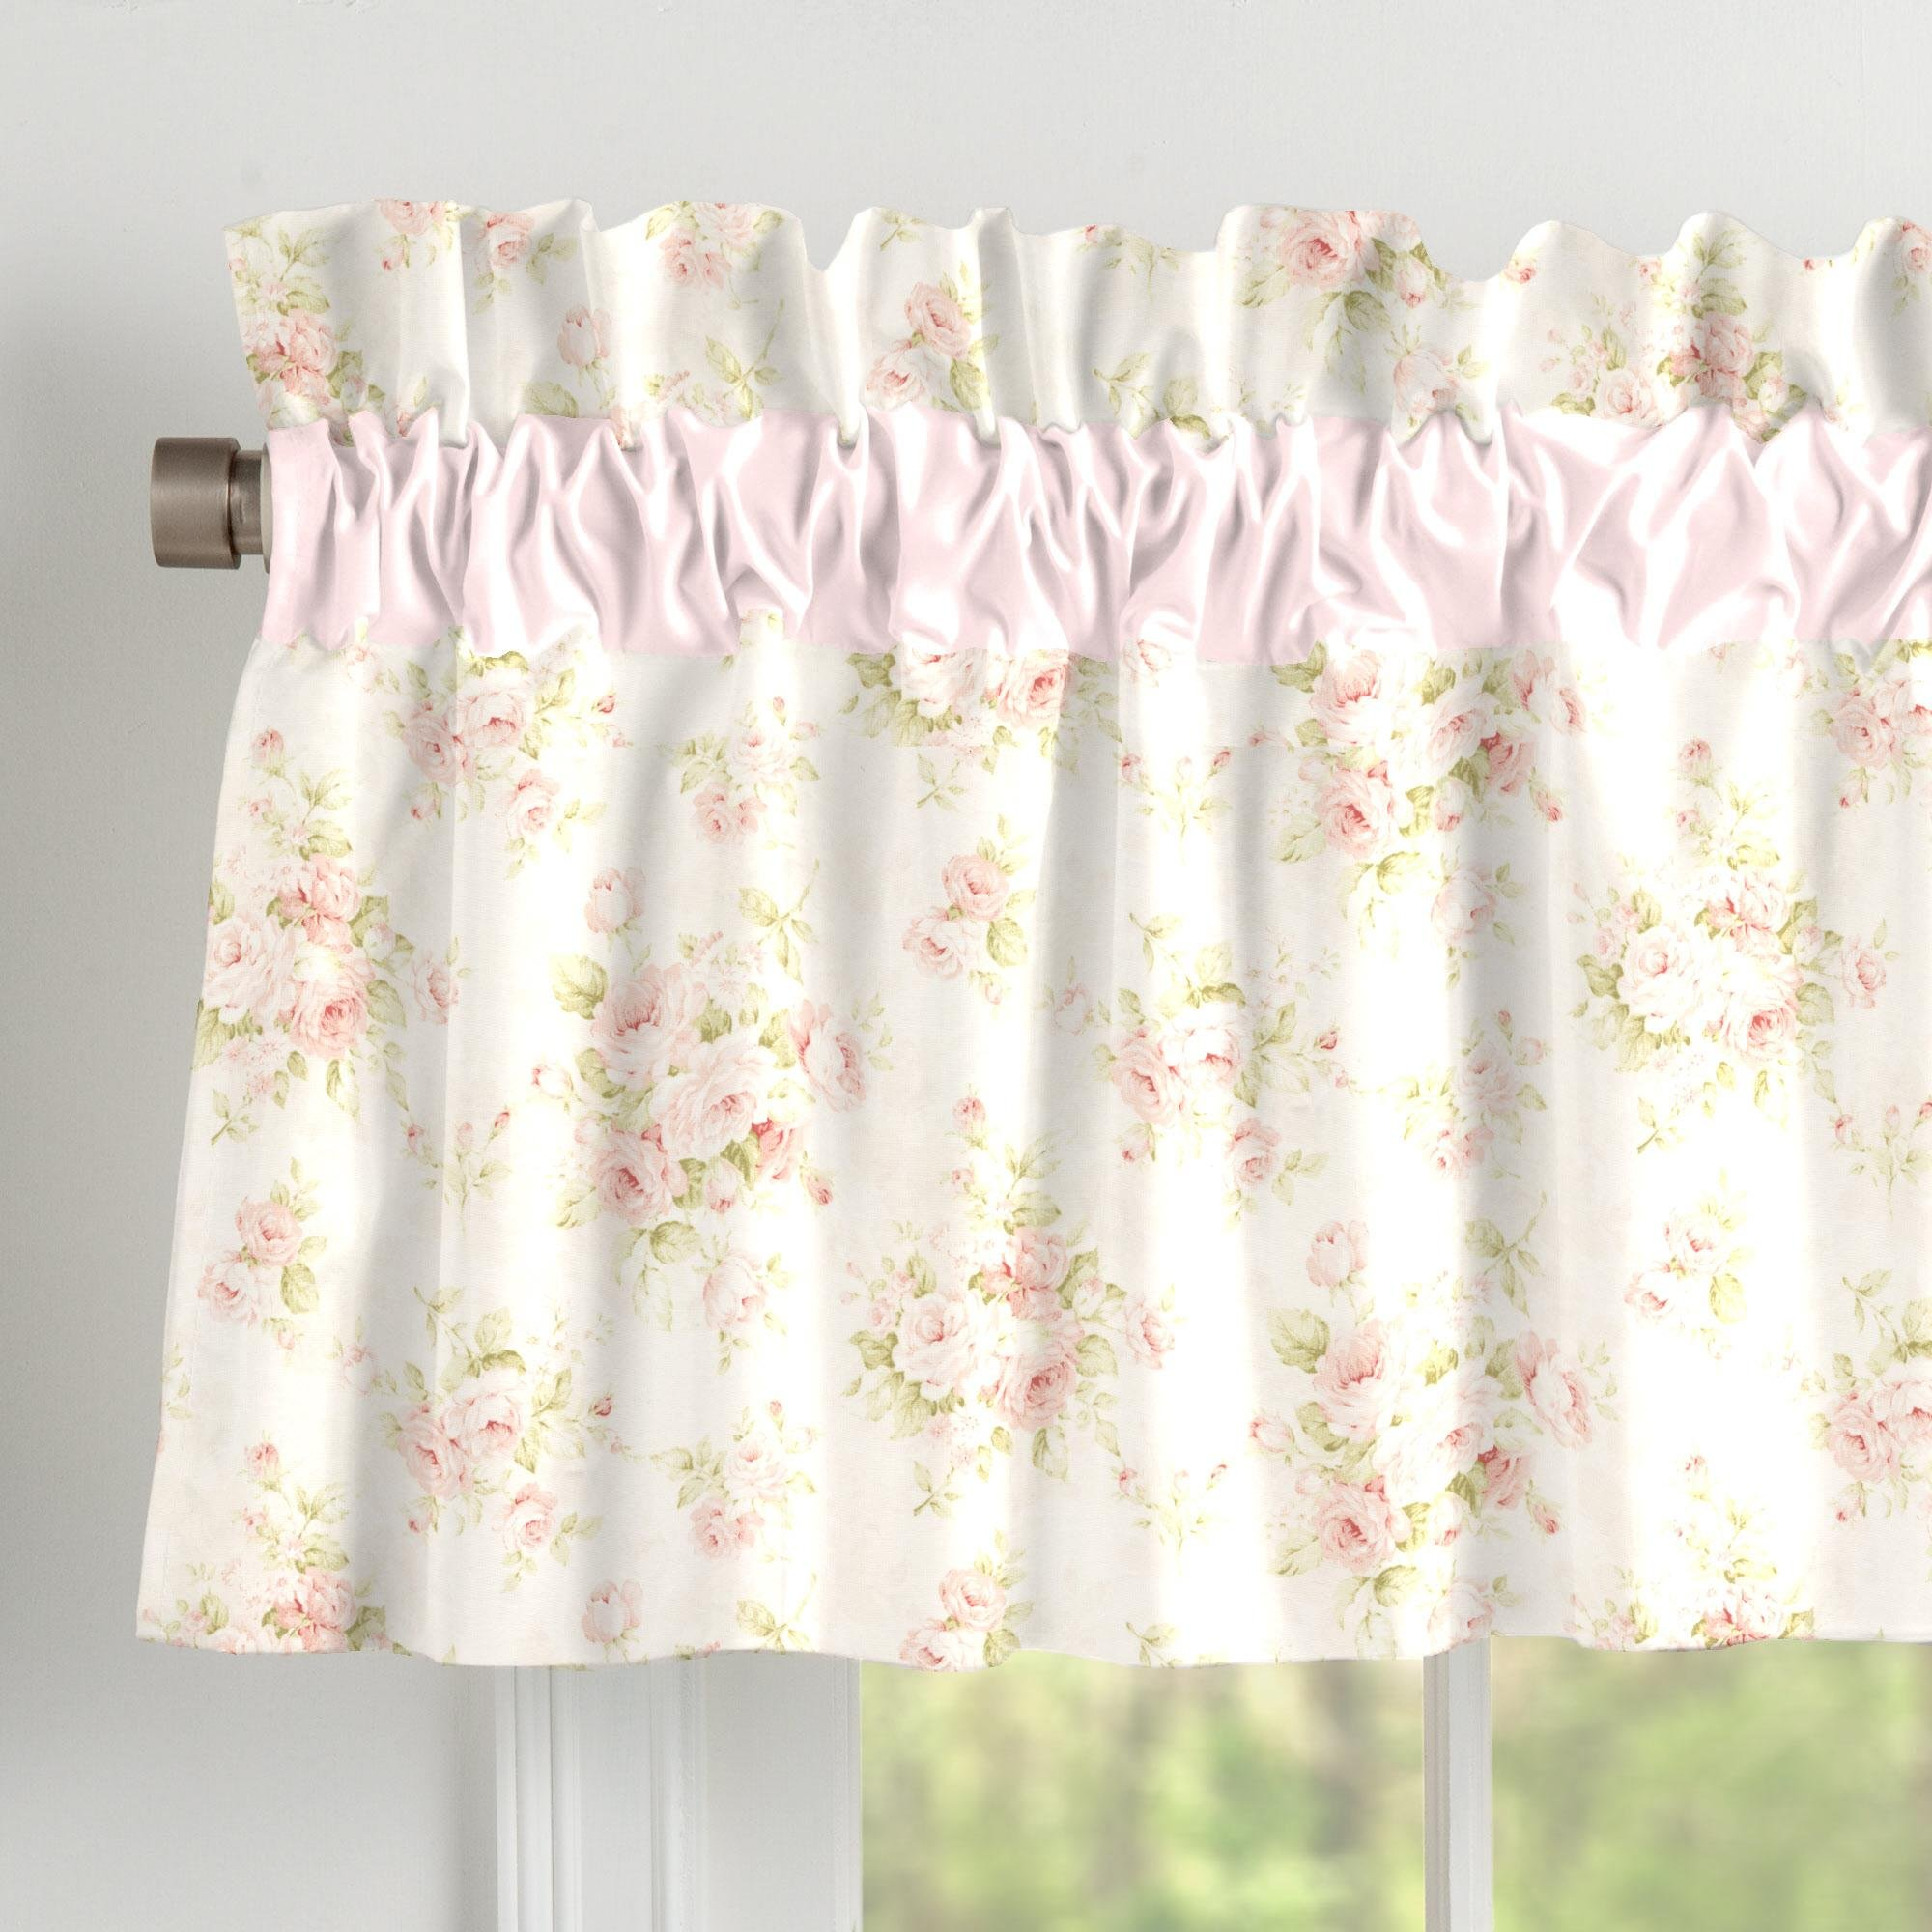 Carousel Designs Shabby Chenille Window Valance Rod Pocket by Carousel Designs